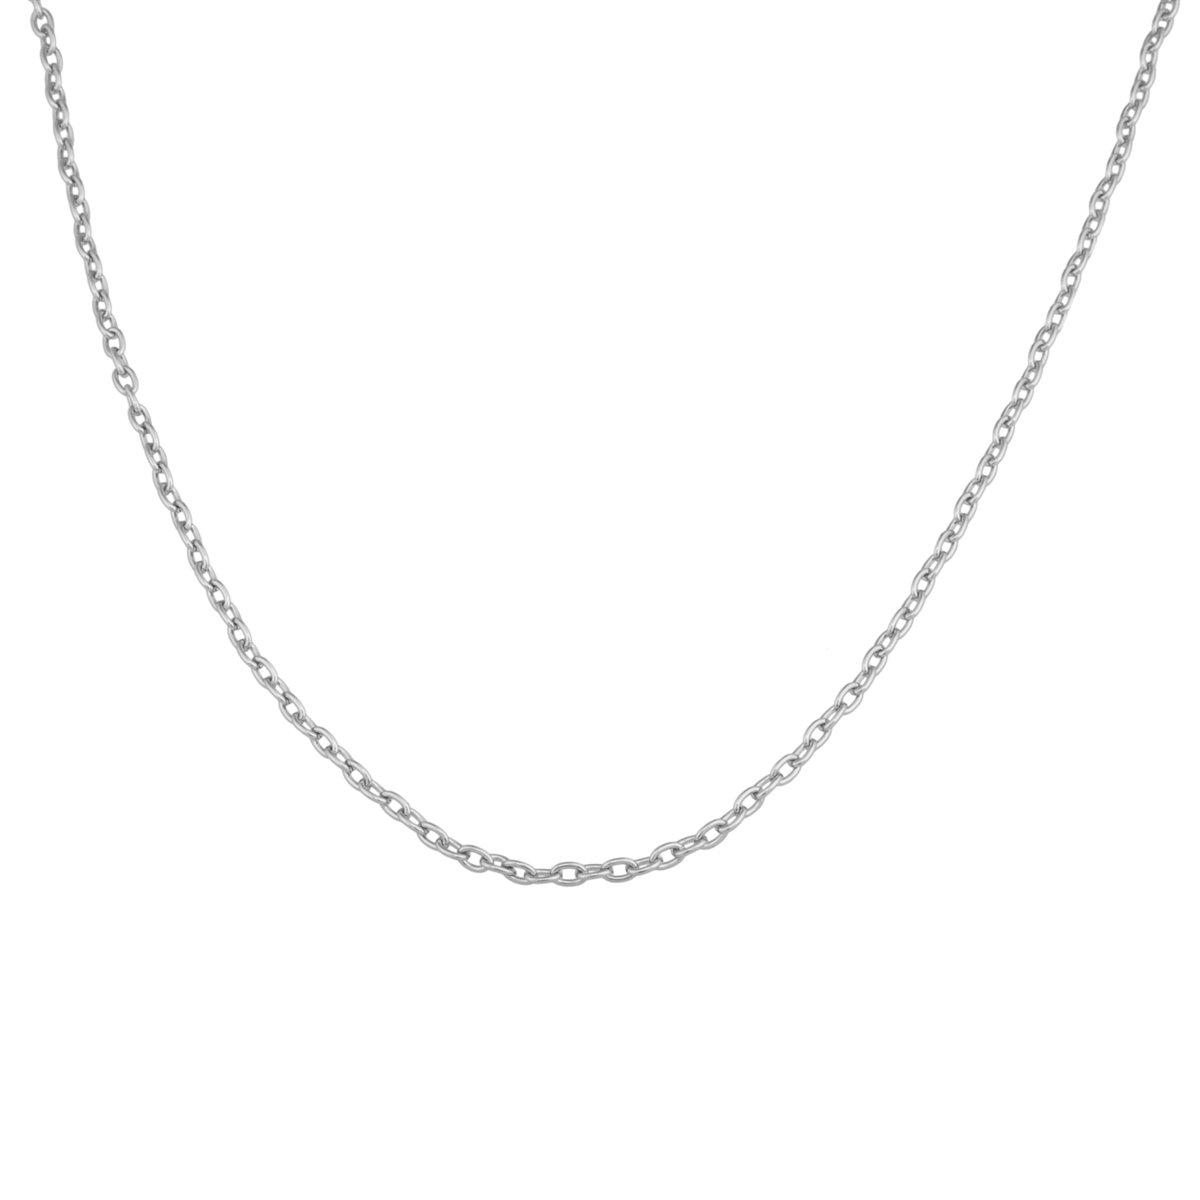 Silver Tone 3mm Base Metal Cross Chain | Charles Albert Jewelry